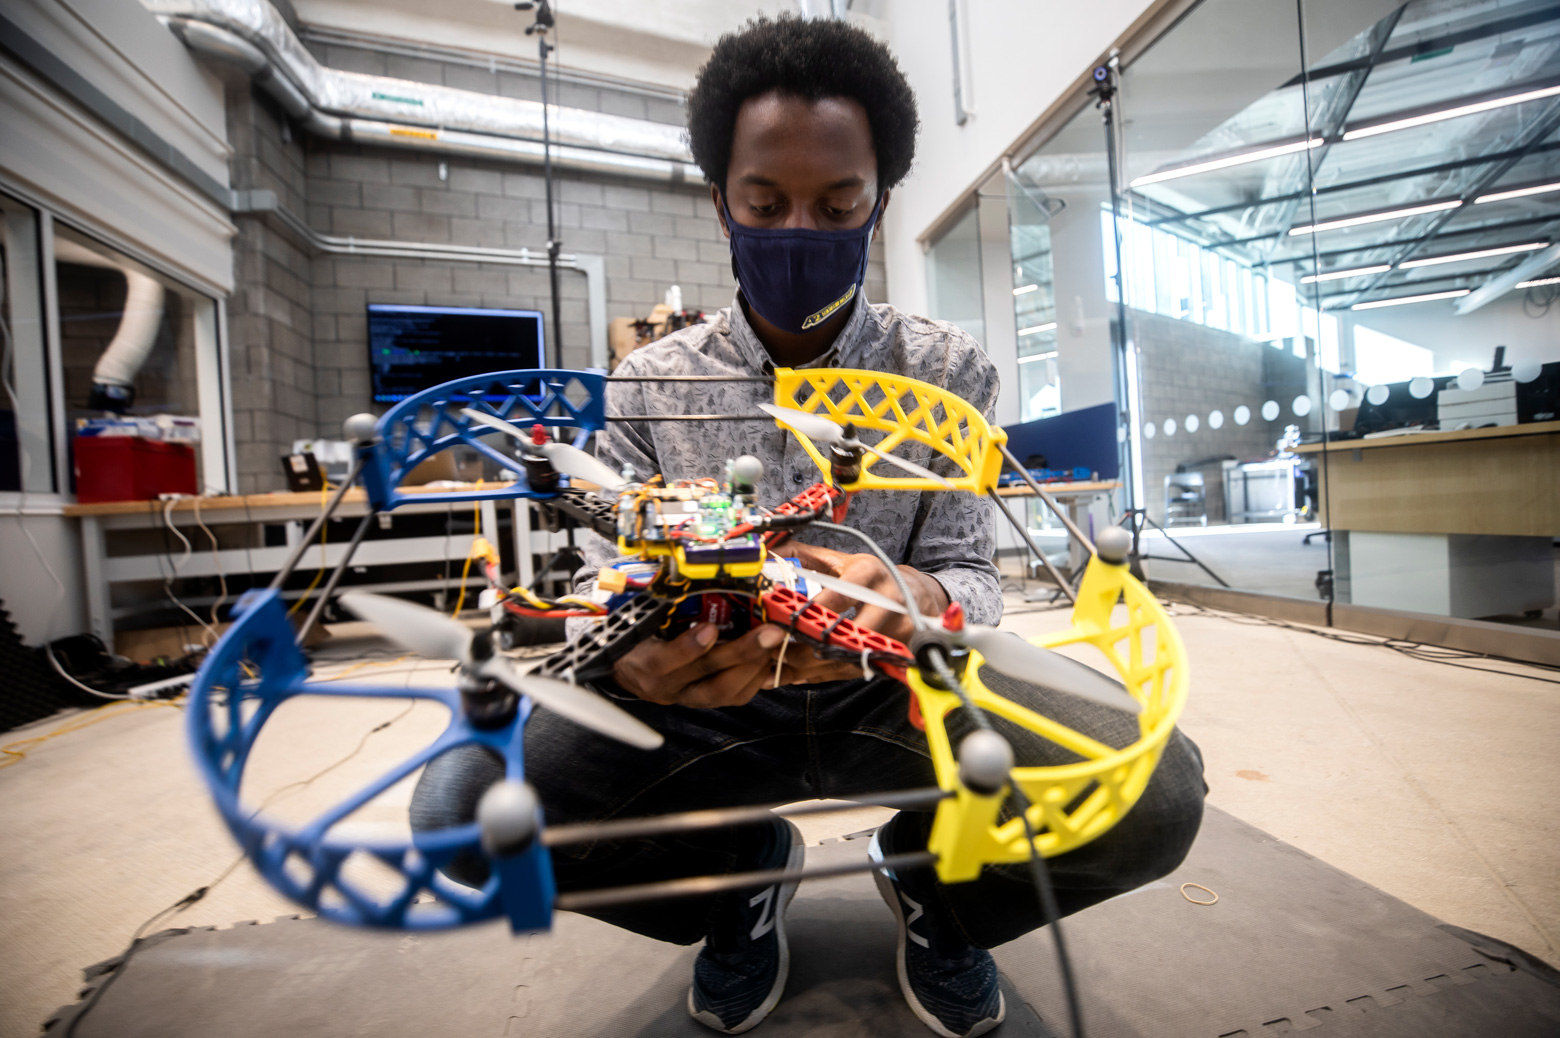 Prince Kuevor, Robotics PhD Student, changes a battery on a drone in the Fly Lab in the Ford Robotics Building at the University of Michigan in Ann Arbor, MI.